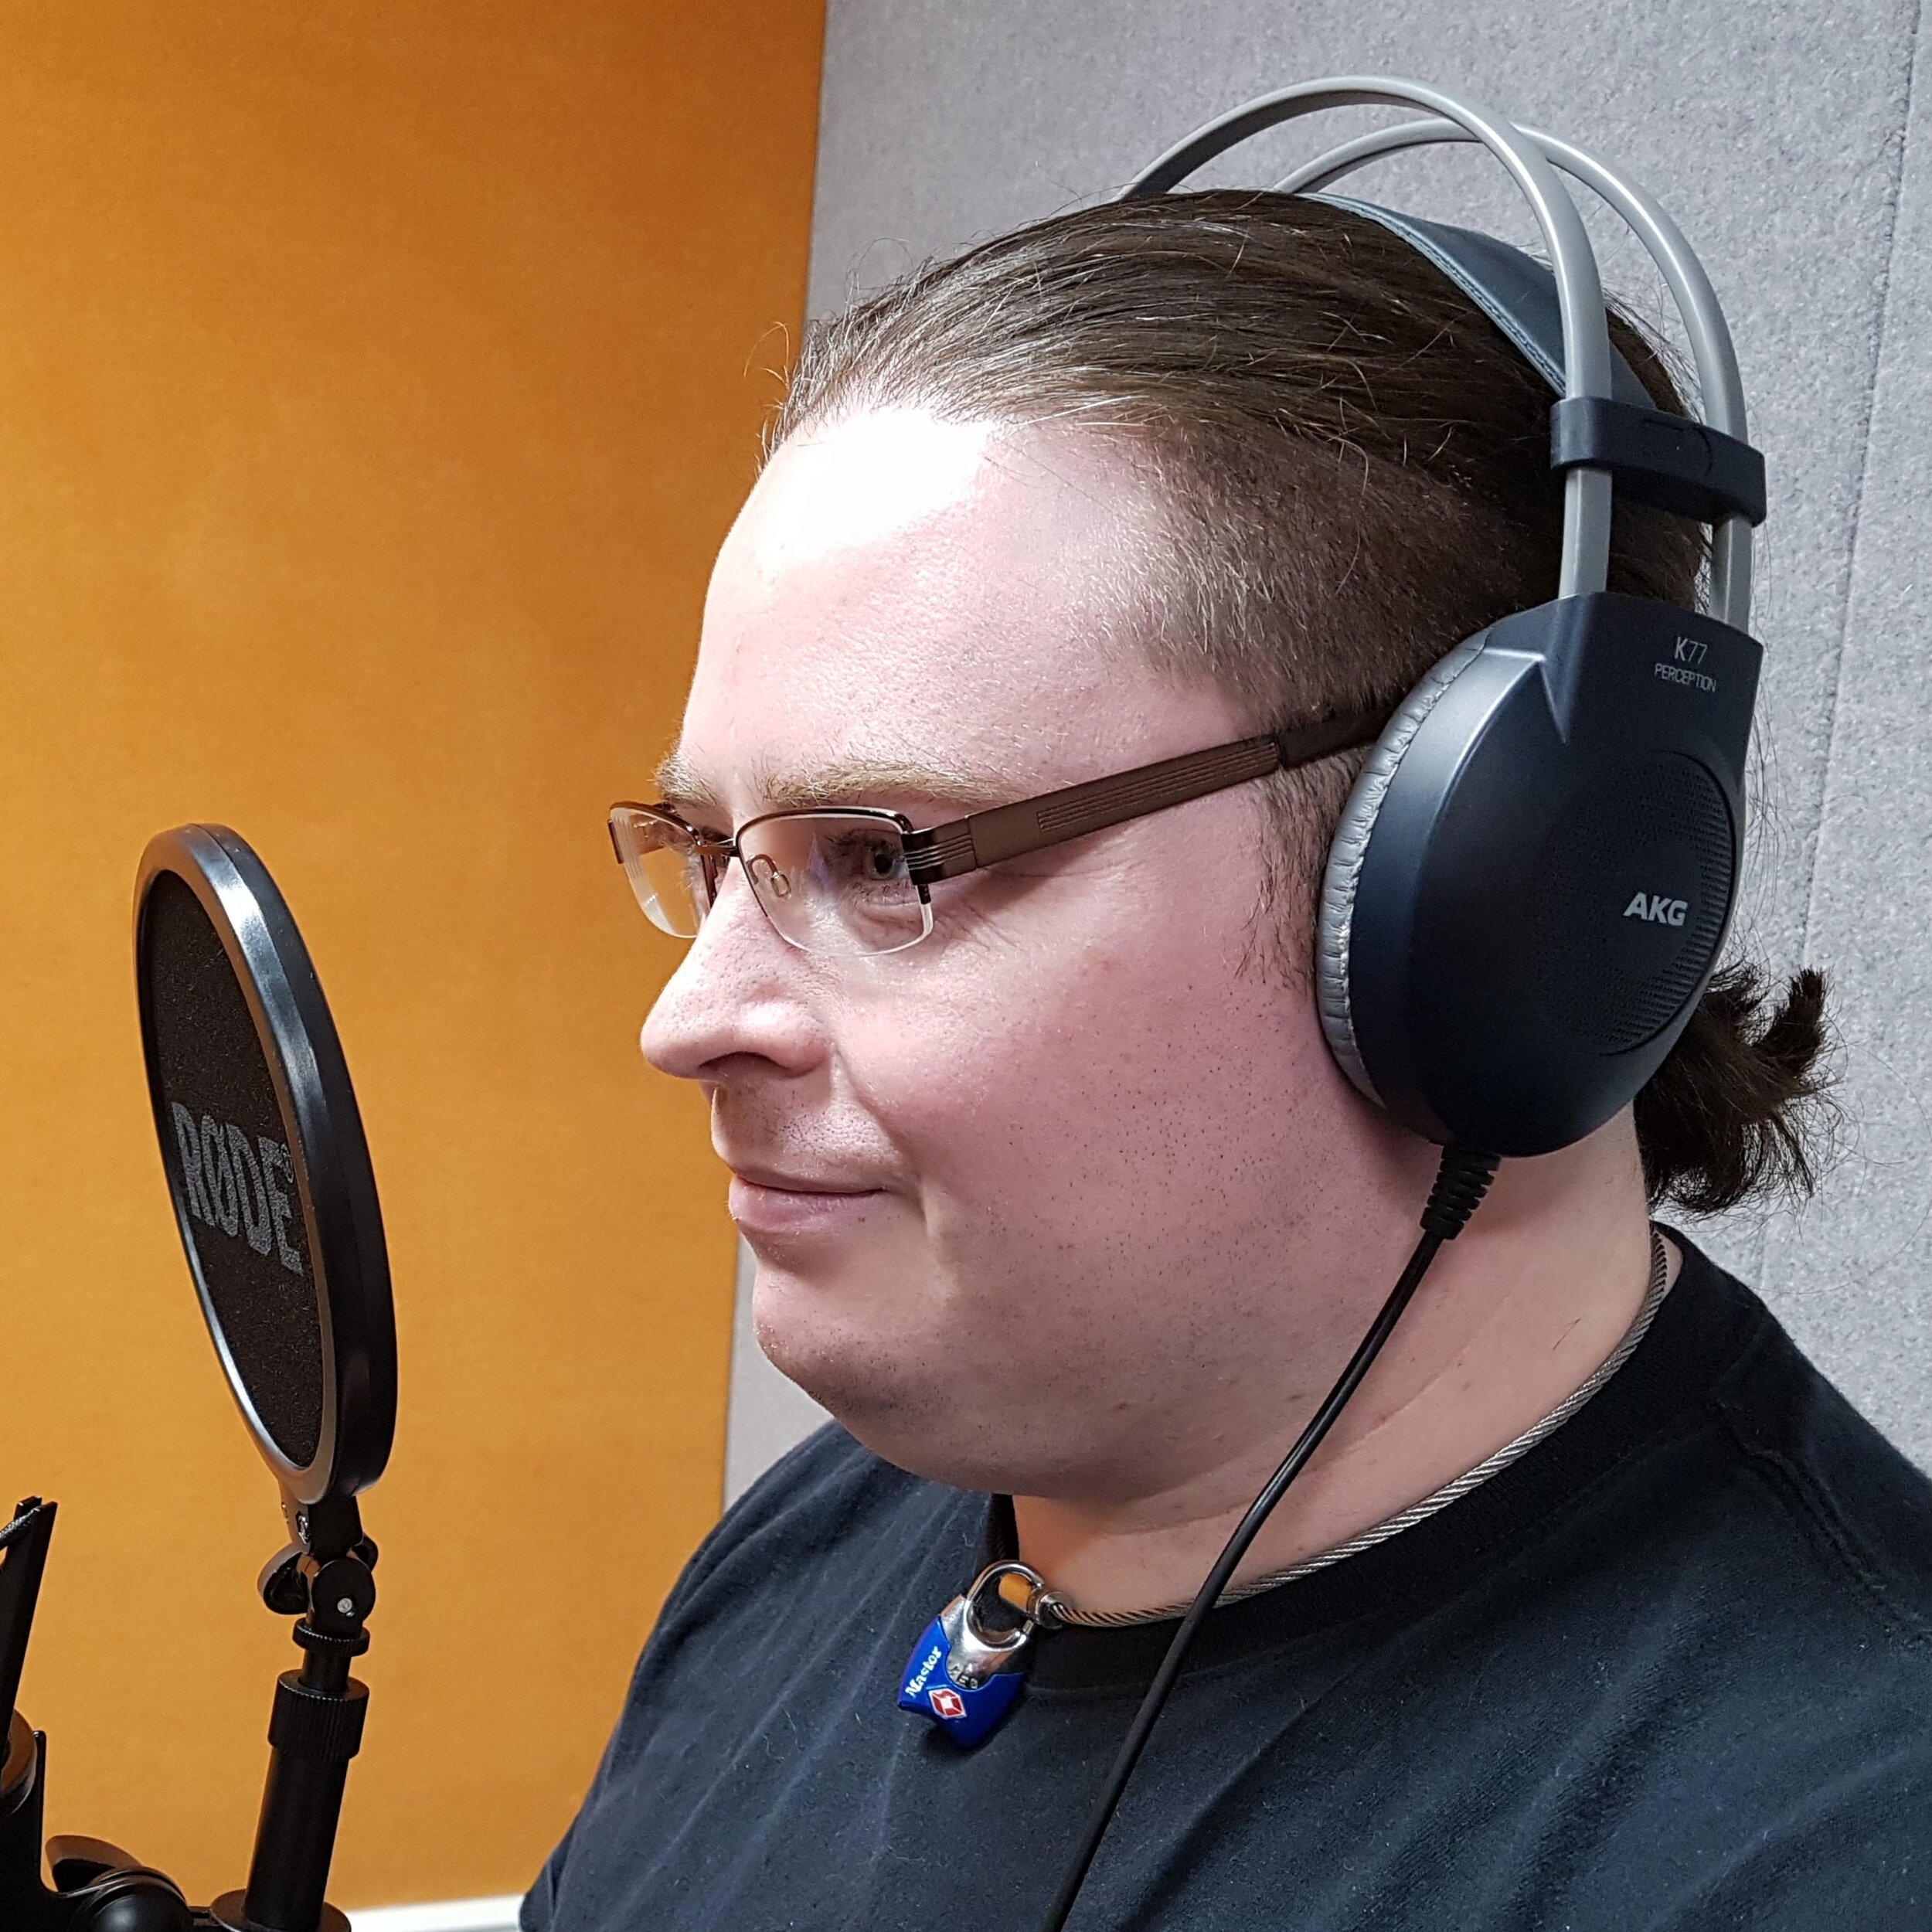 Lee Davis-Thalbourne, a white man with brown hair and glasses wearing headphones, in front of a microphone.